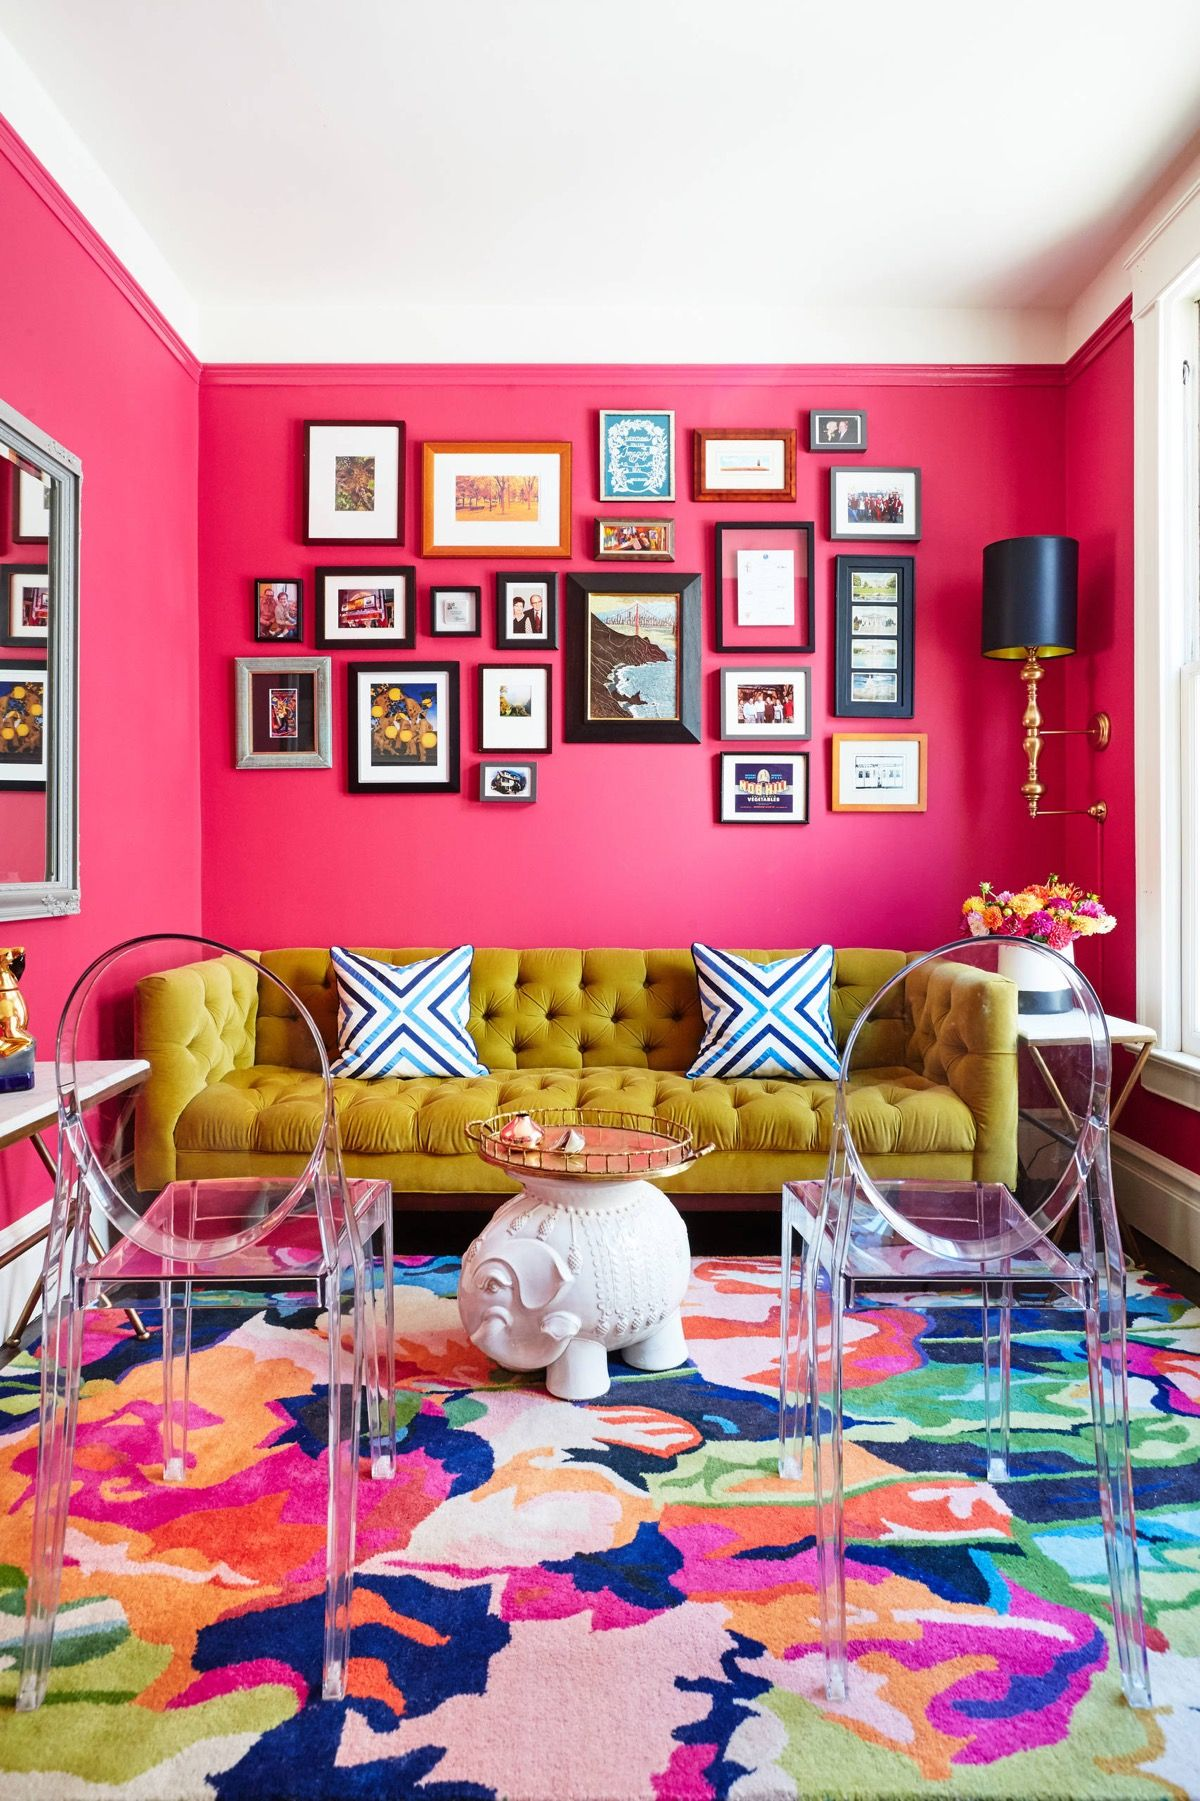 51 Pink Living Rooms With Tips Ideas And Accessories To Help You Design Yours Colourful Living Room Decor Colourful Living Room Living Room Colors Colorful living room pics